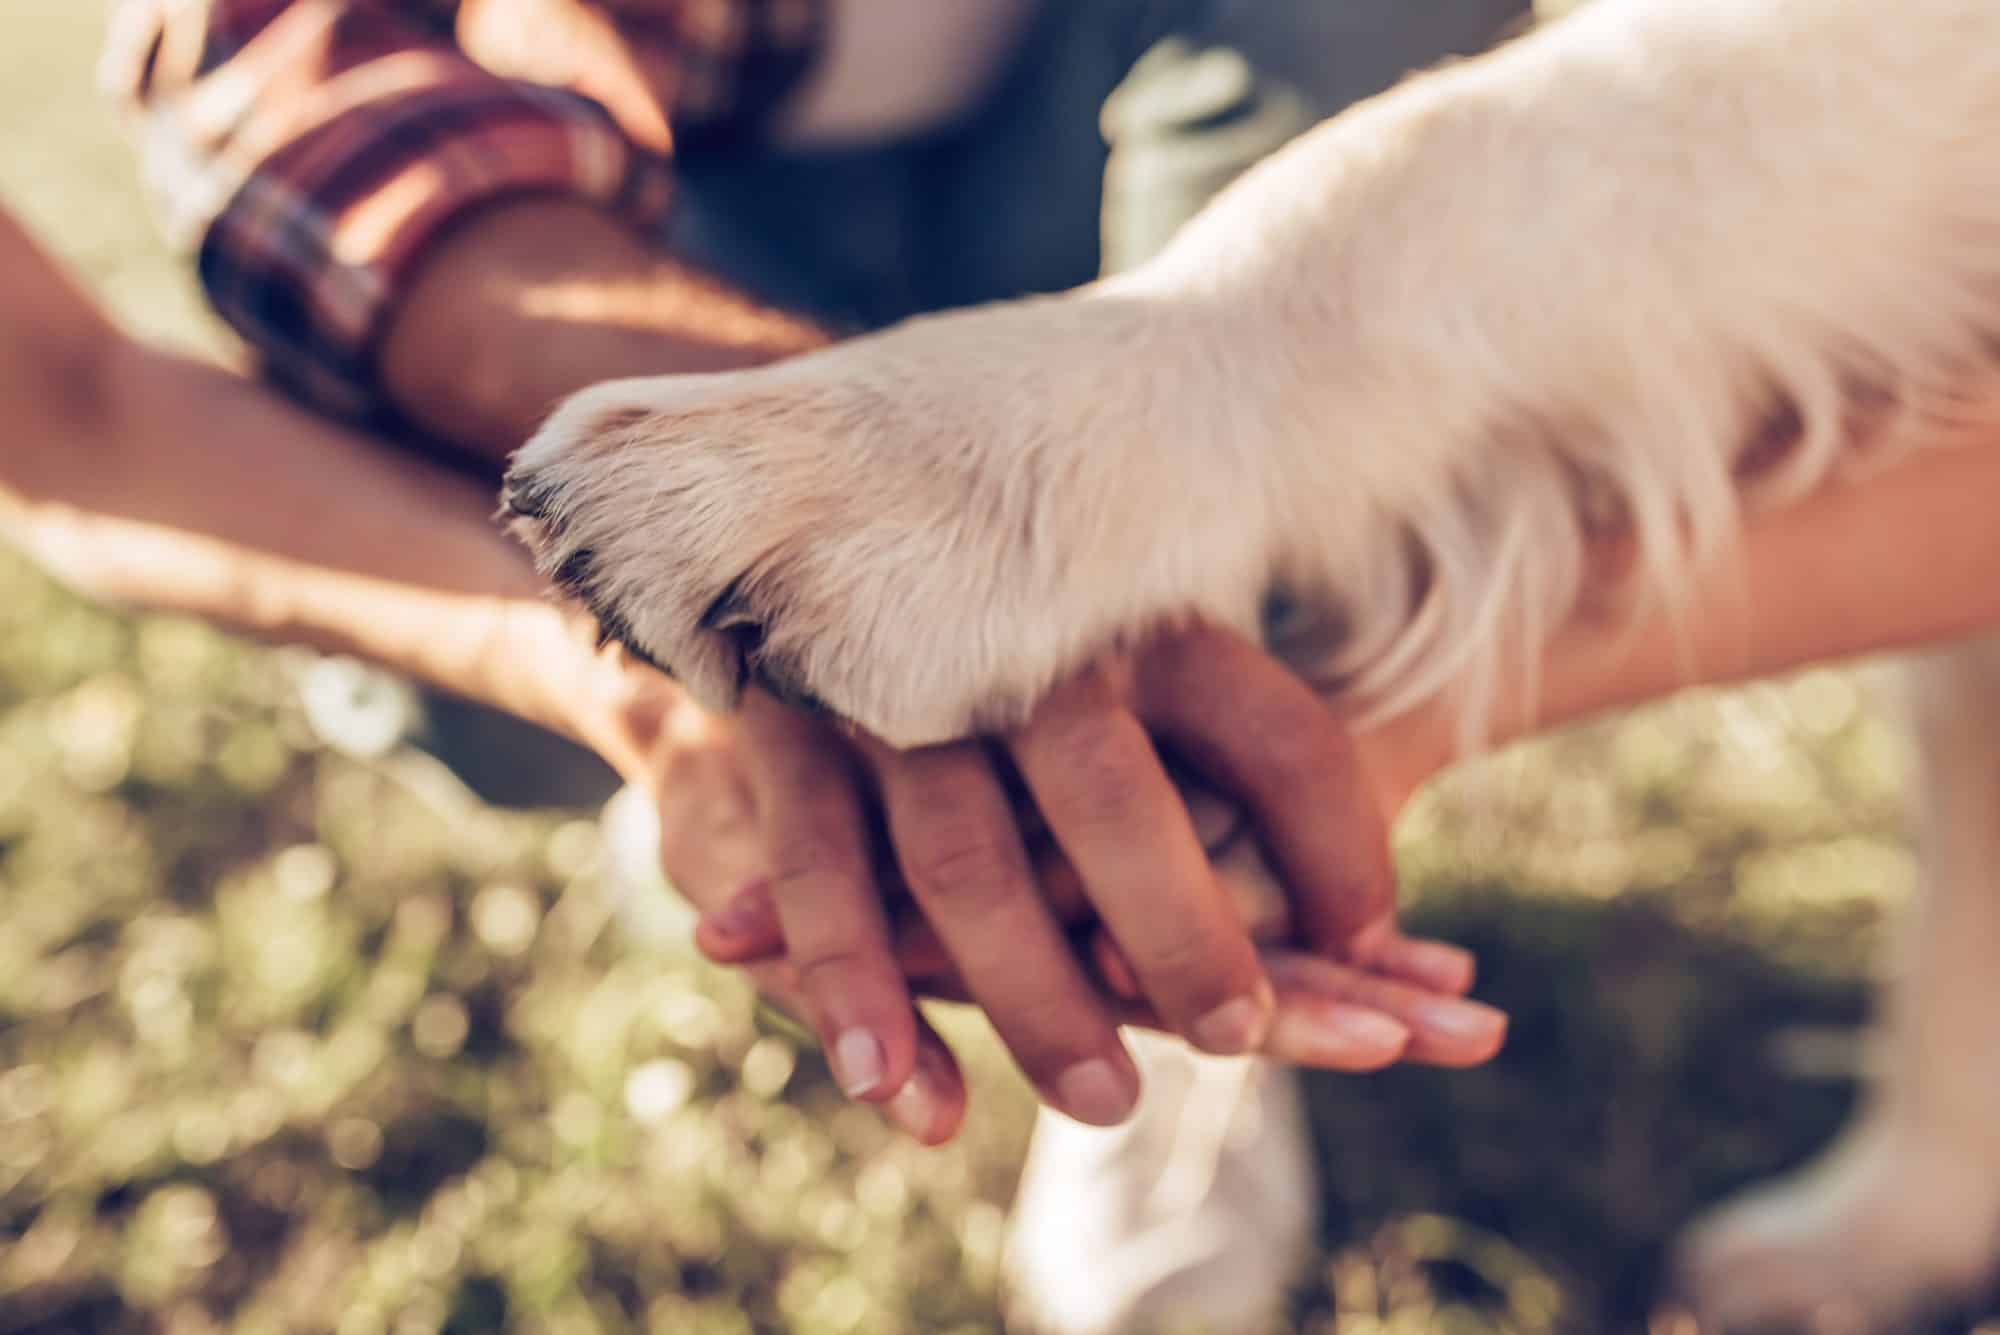 Dog paw on top of hands.